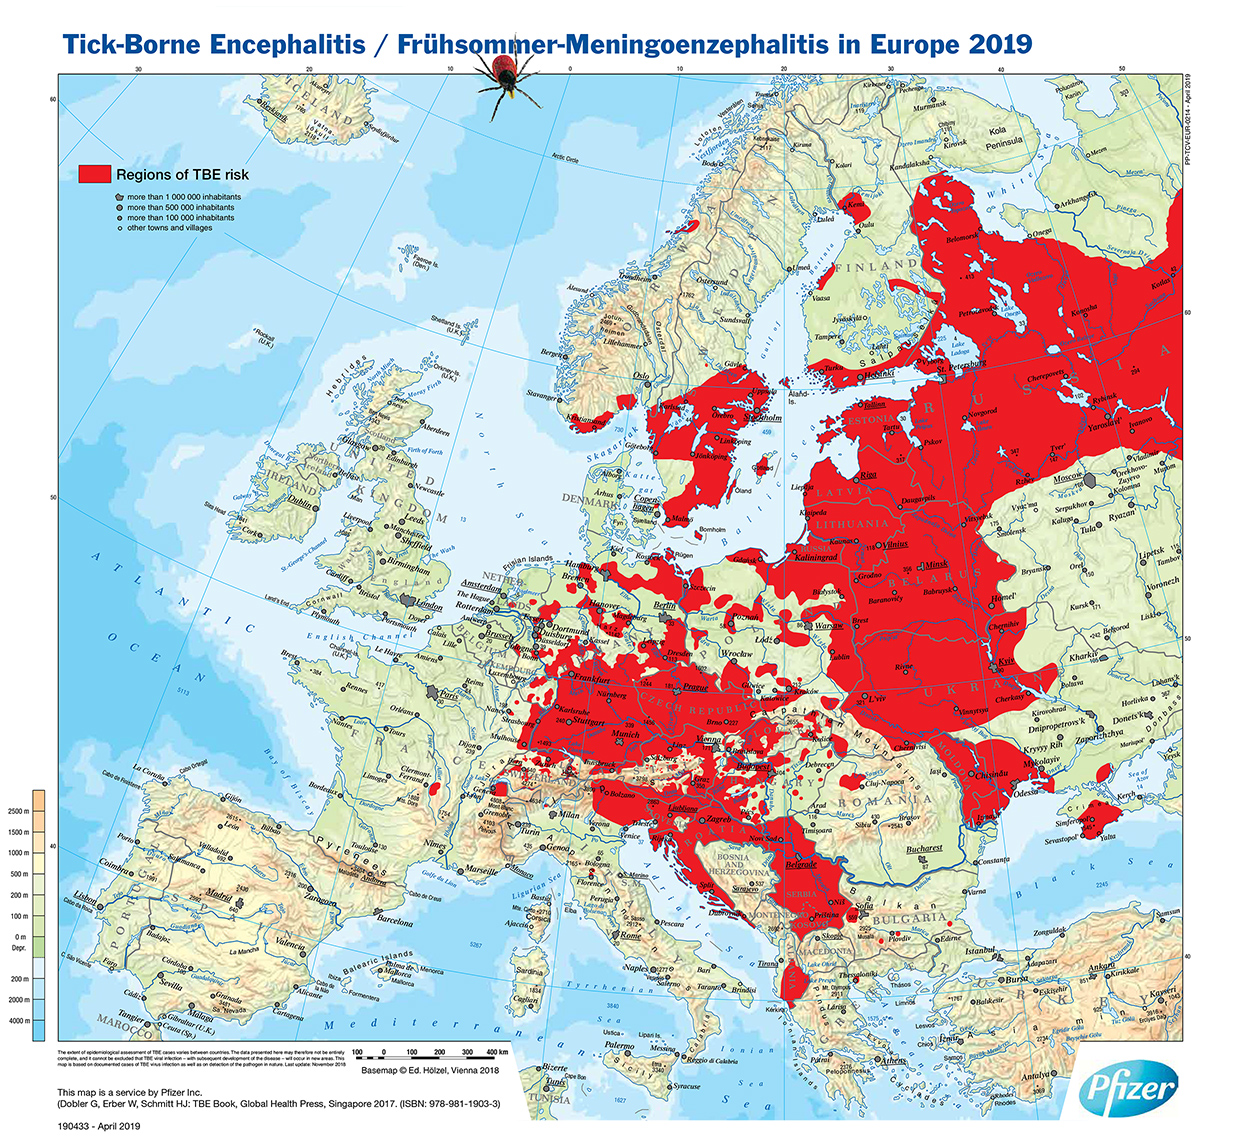 Map showing the distribution area of tick-borne encephalitis in Europe coloured red.